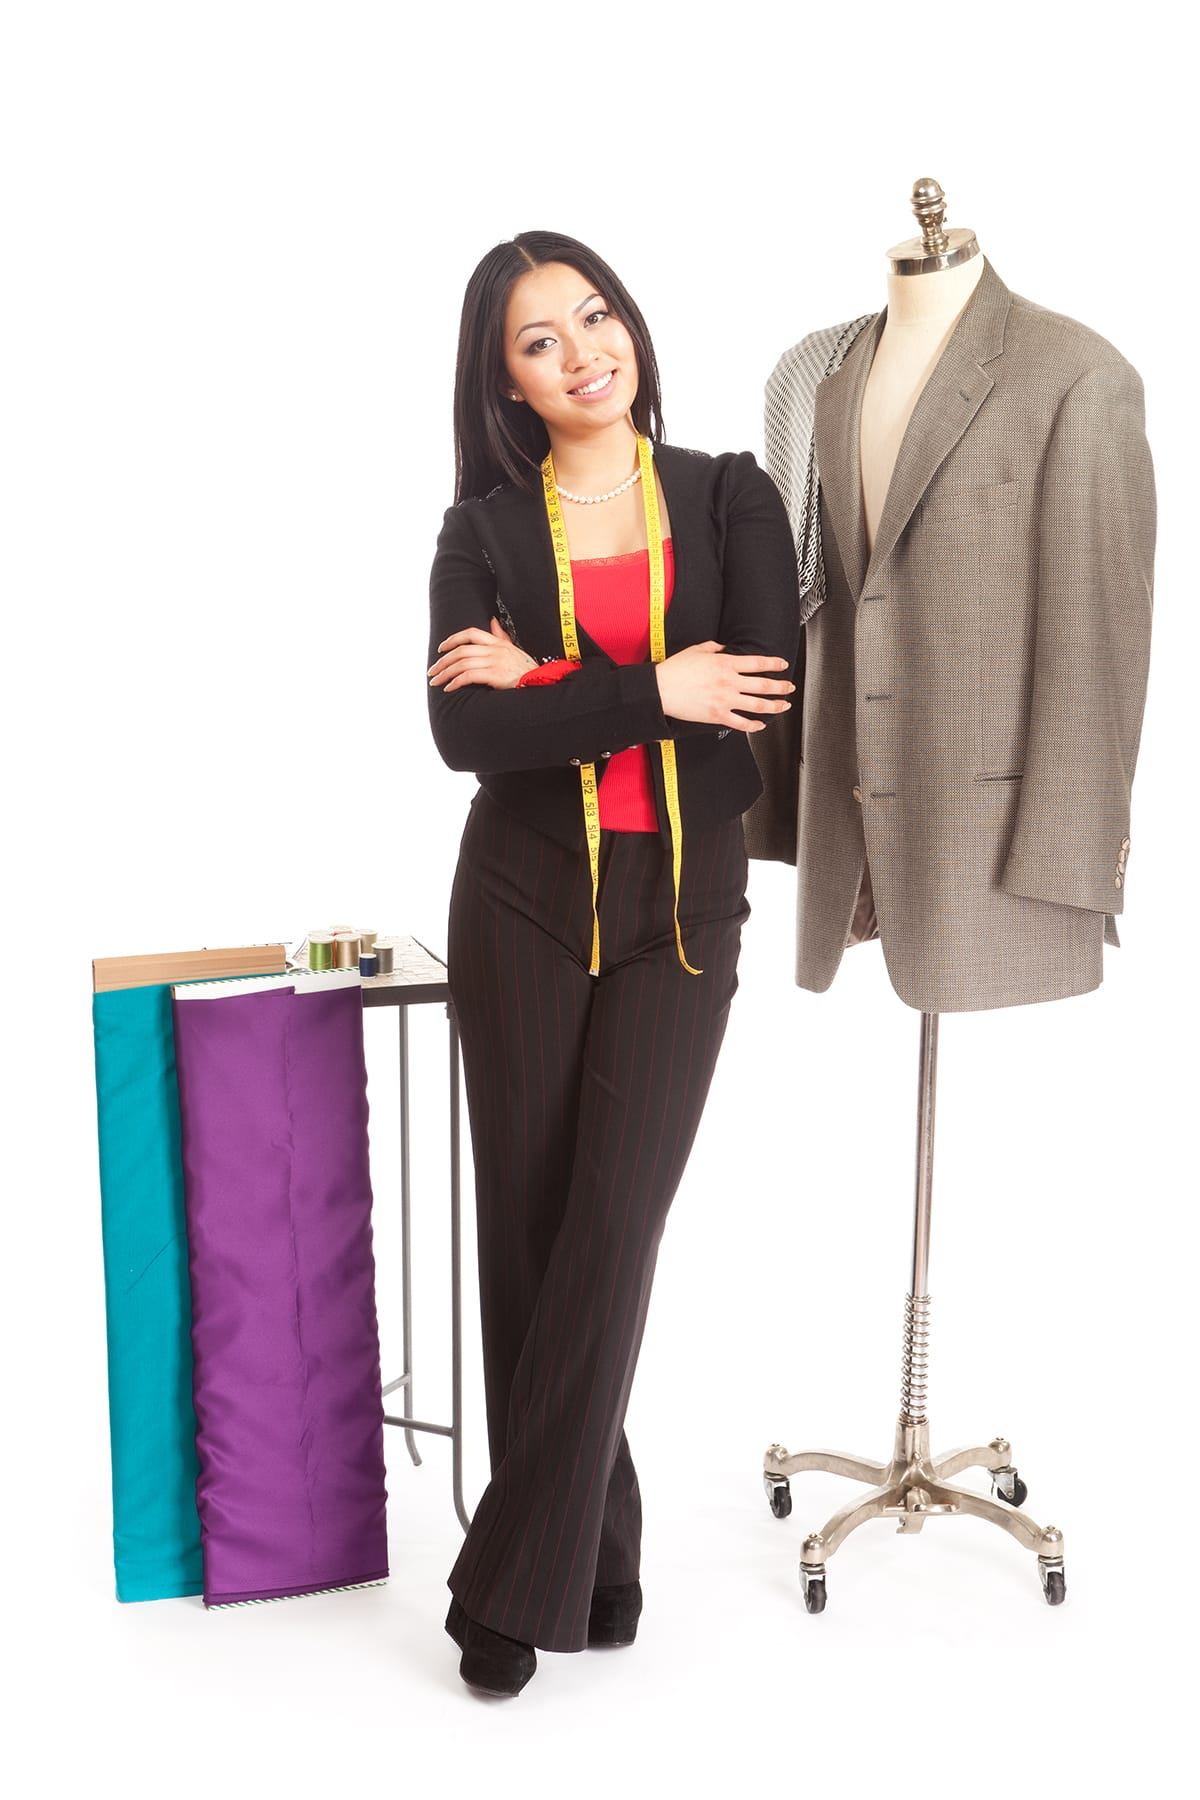 young businesswoman posing with fabrics while she tailors a suit jacket